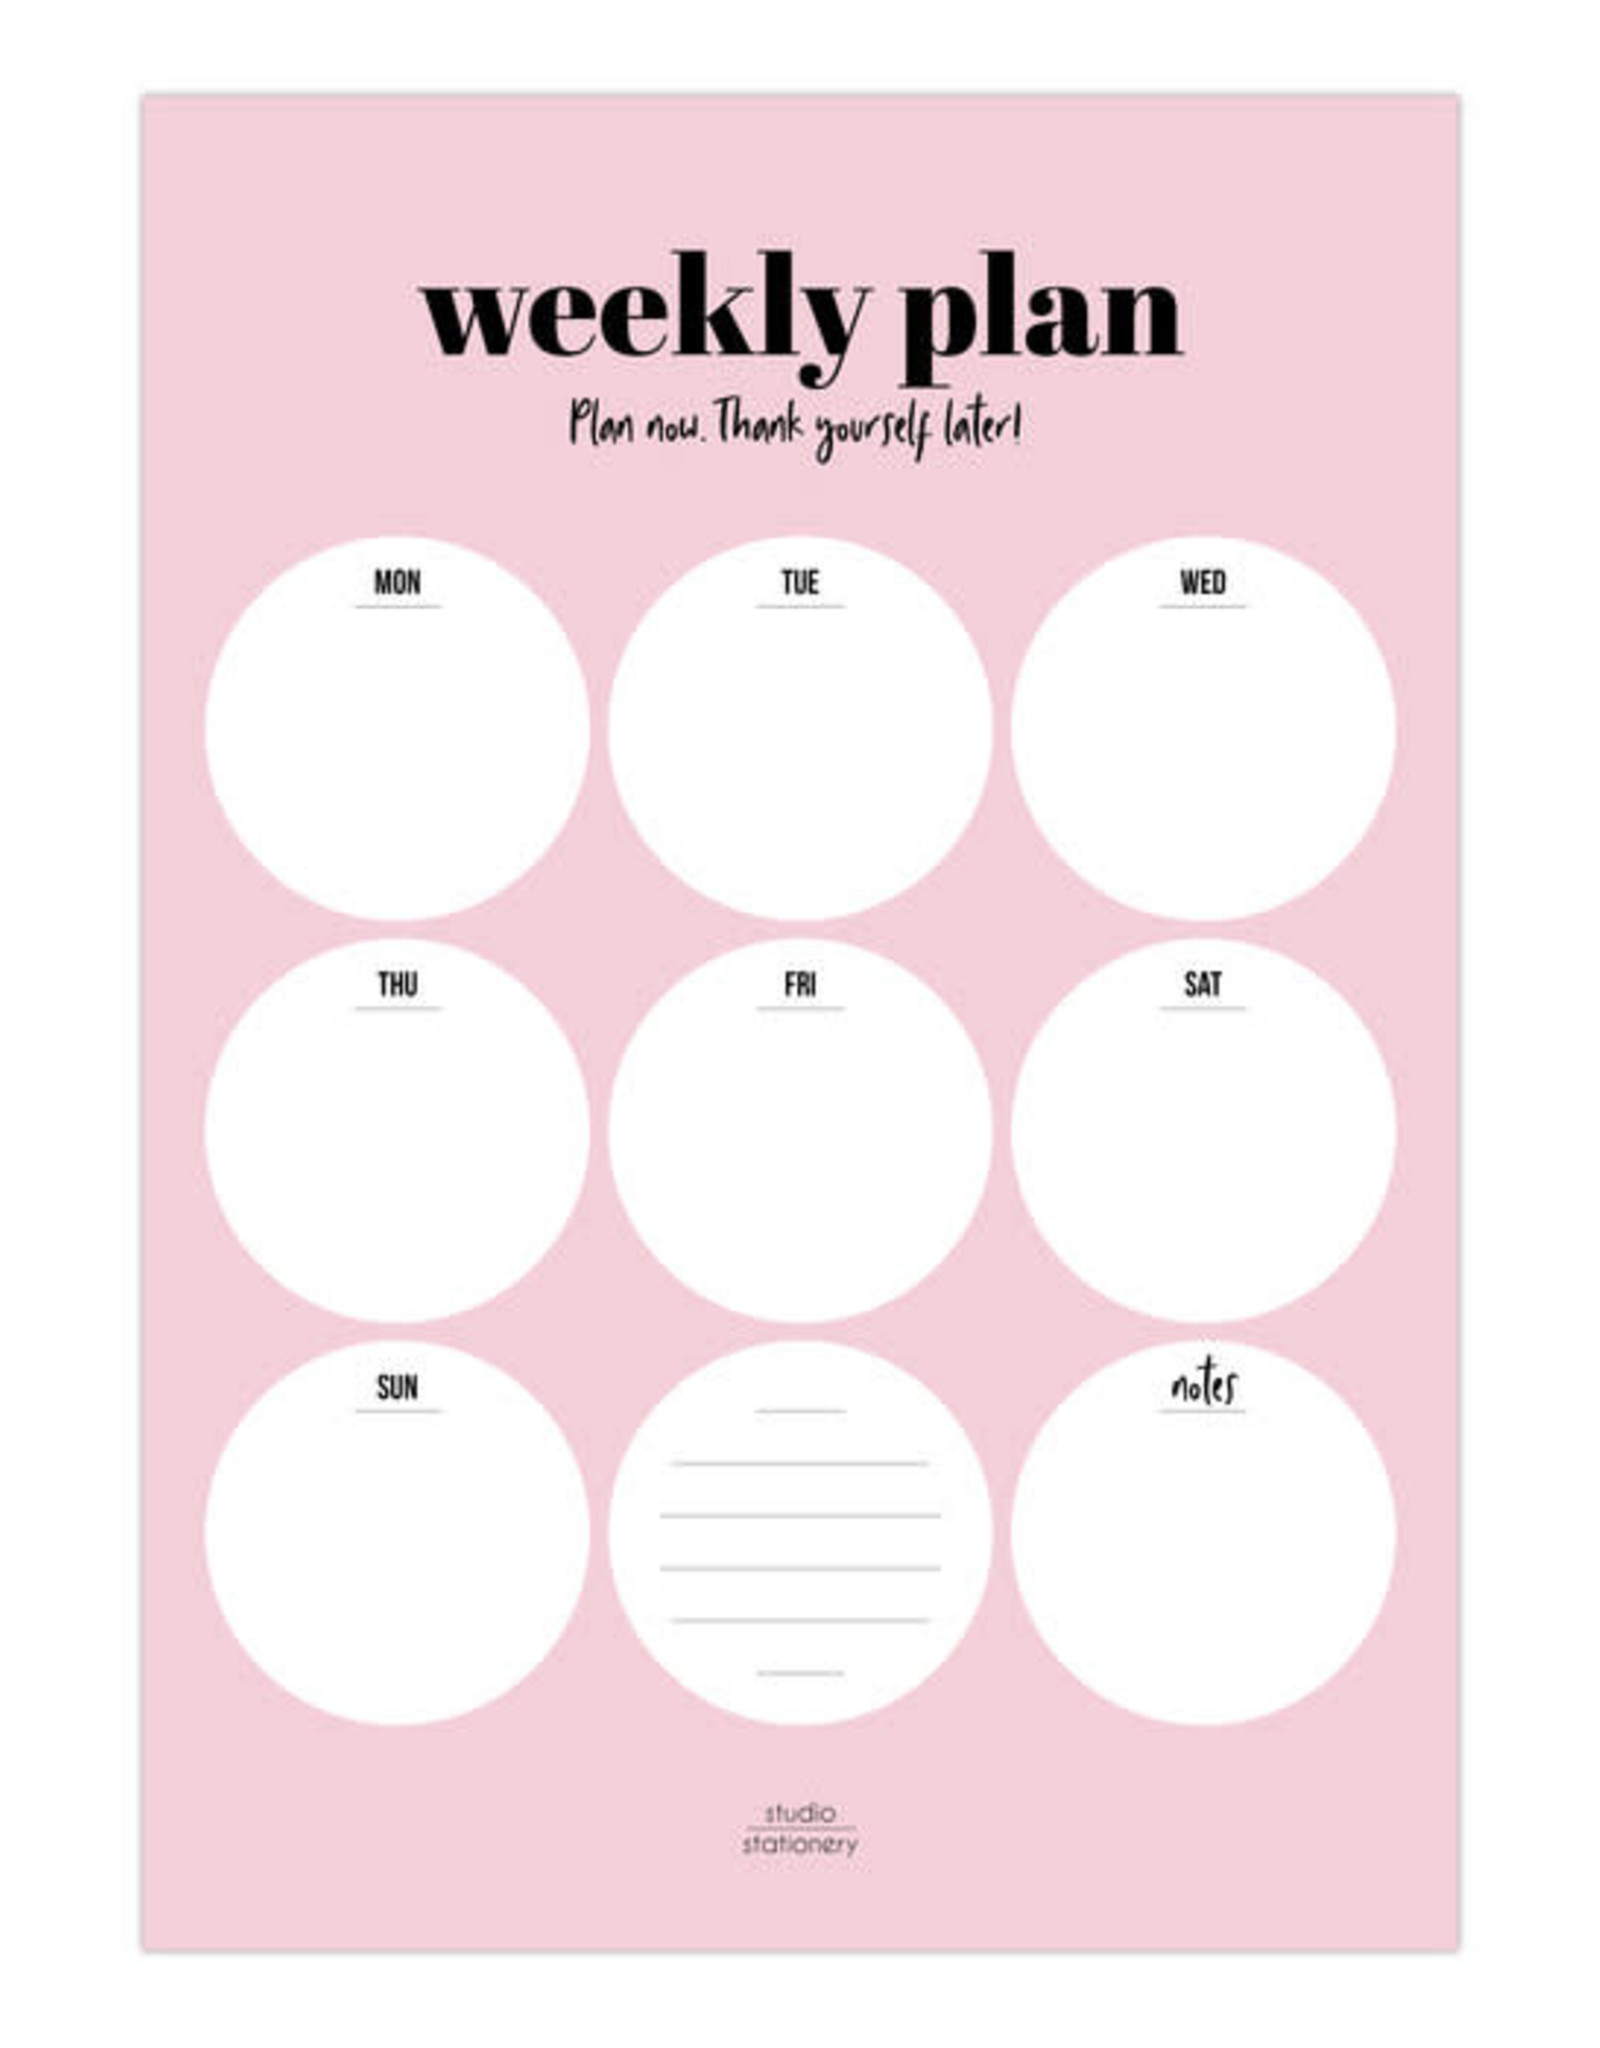 studio stationery Studio stationery A4 Noteblock Weekly plan Pink,